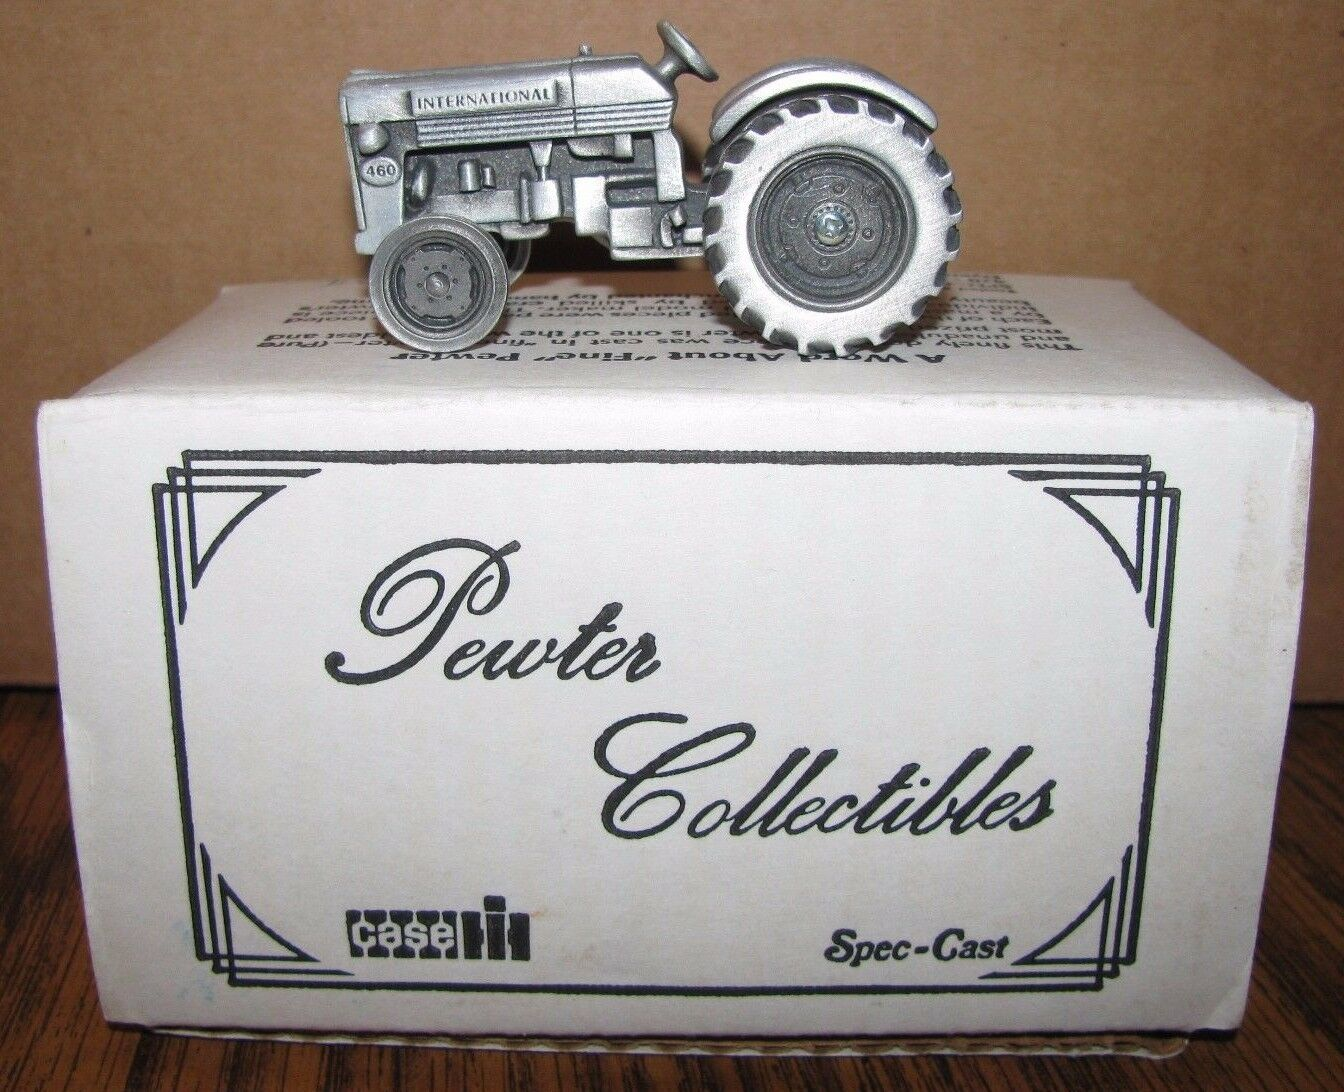 IH International 460 Pewter Utility Tractor 1 43 Spec Cast Toy ZJD34  1990's